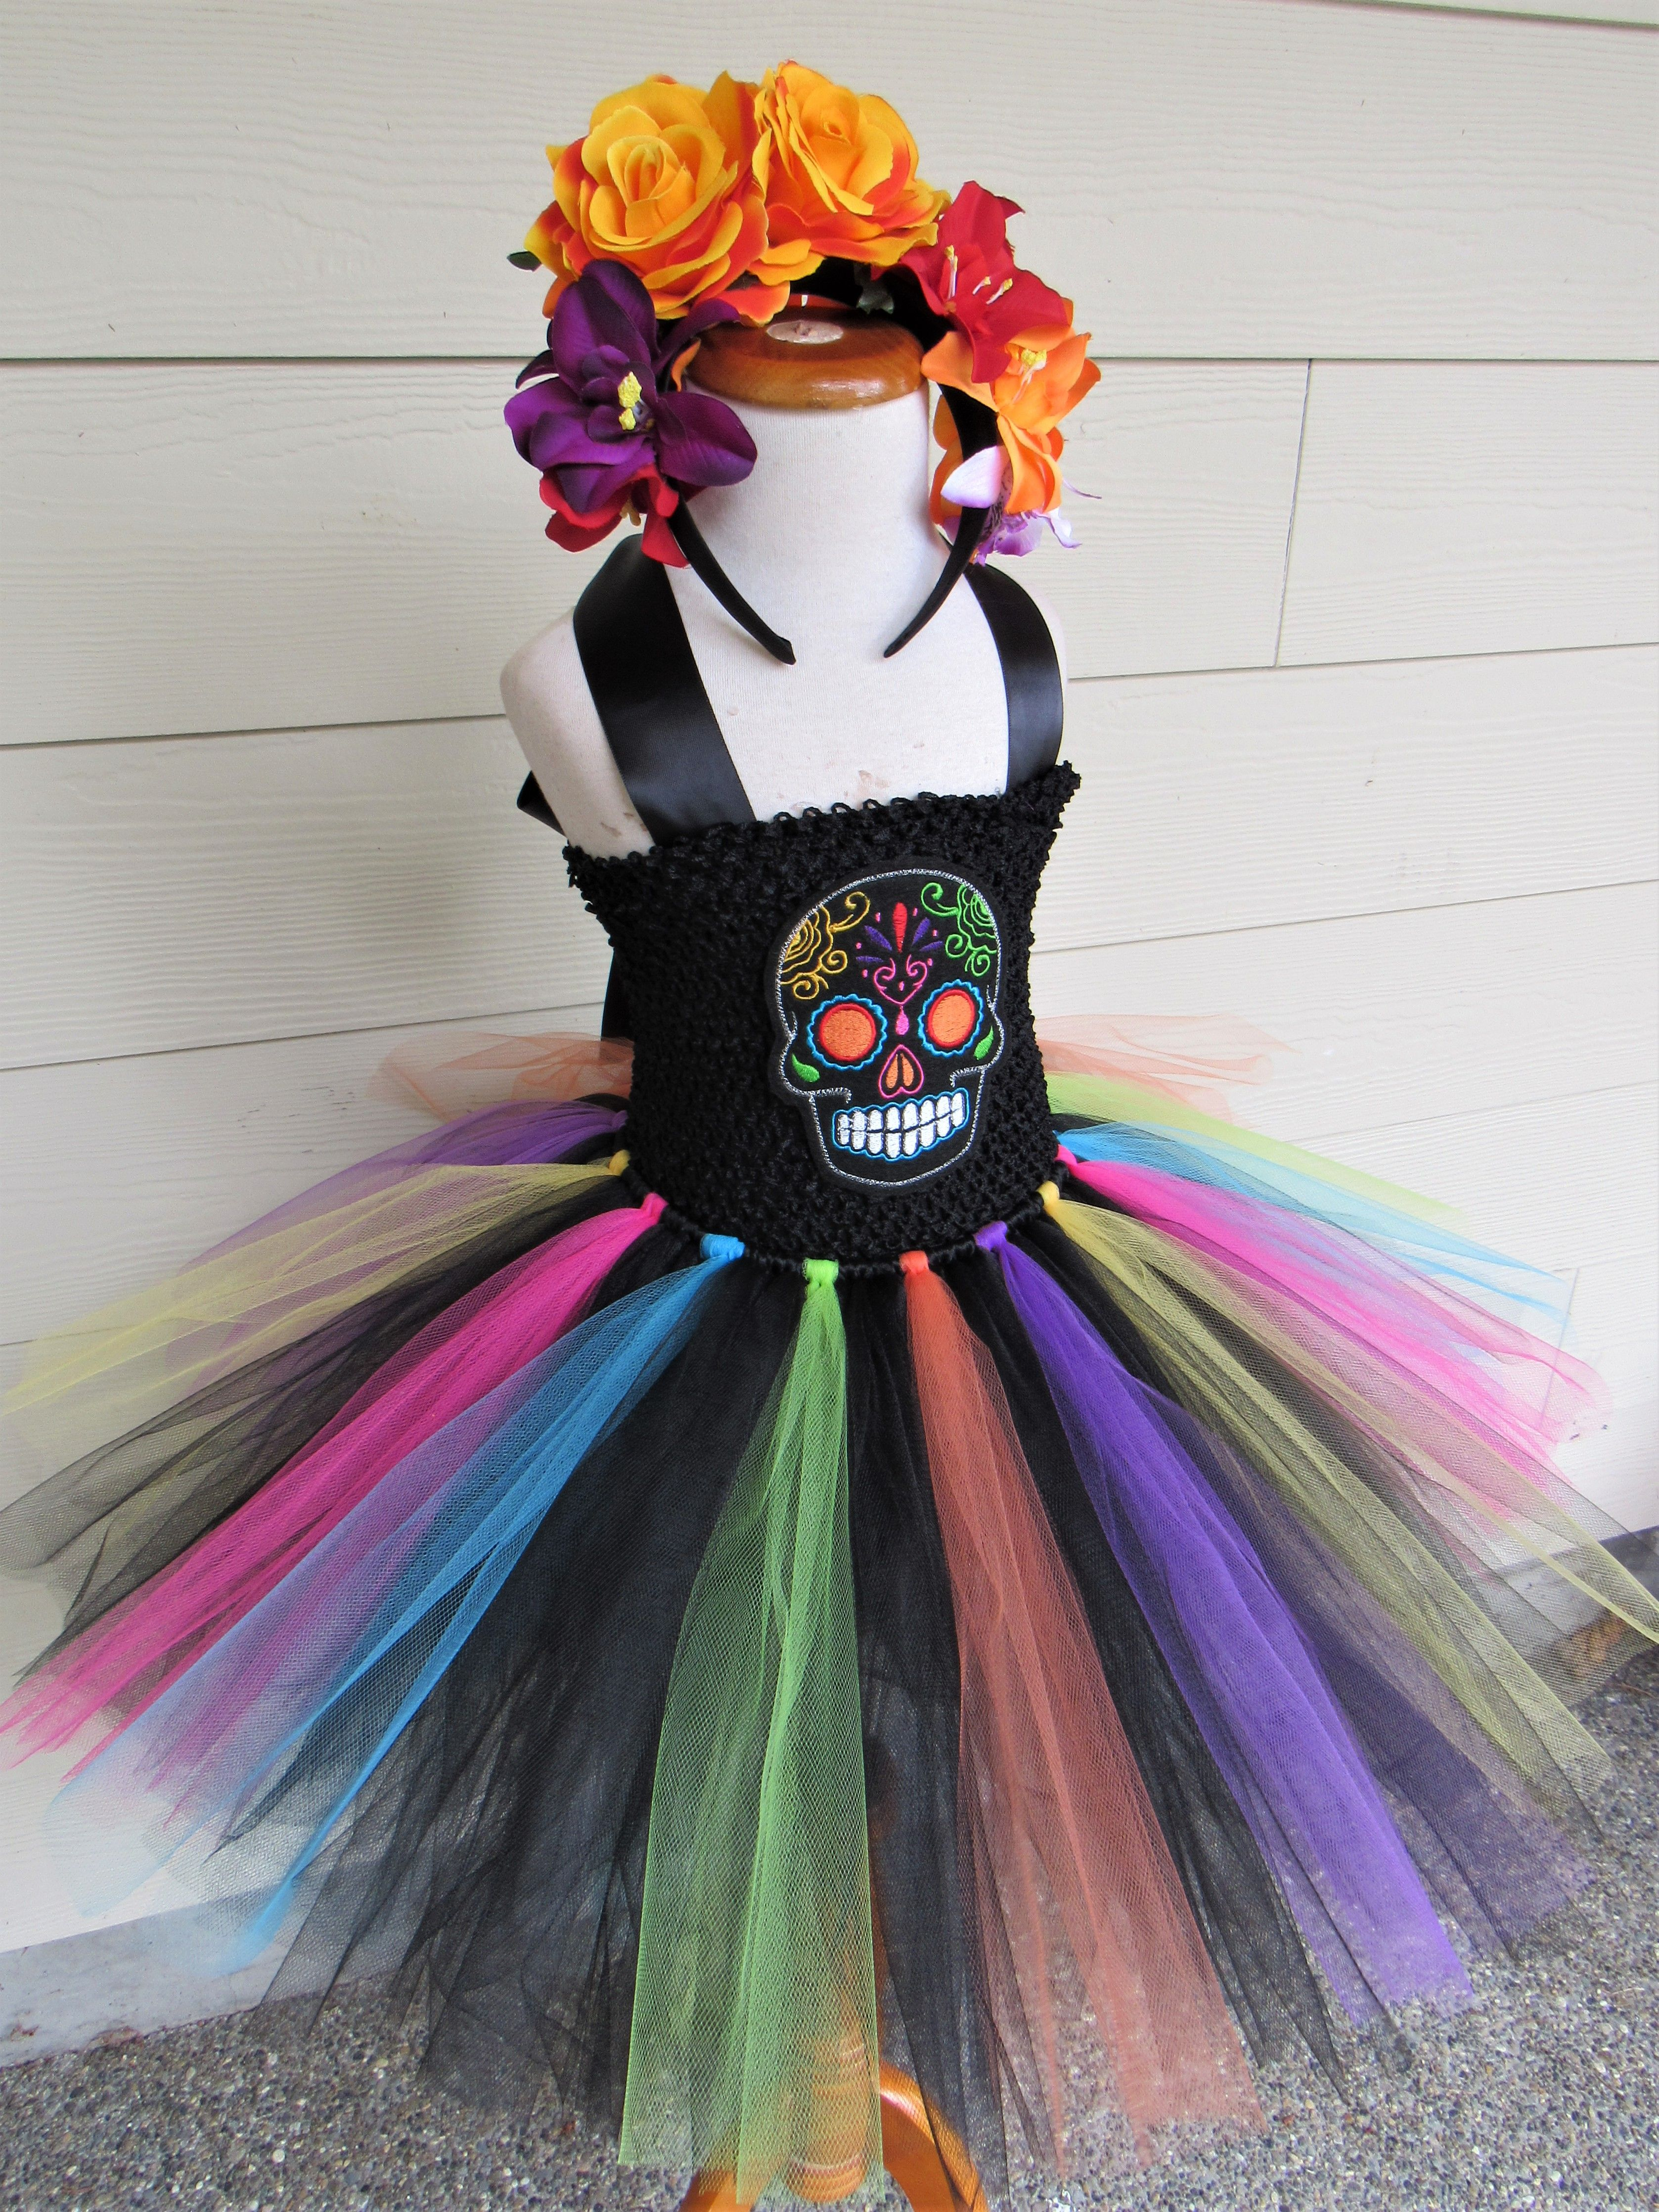 0cdf90d098 Dia De Los Muertos/Day of the Dead Halloween Tutu Costume found at my Etsy  shop, Tutu Territory!